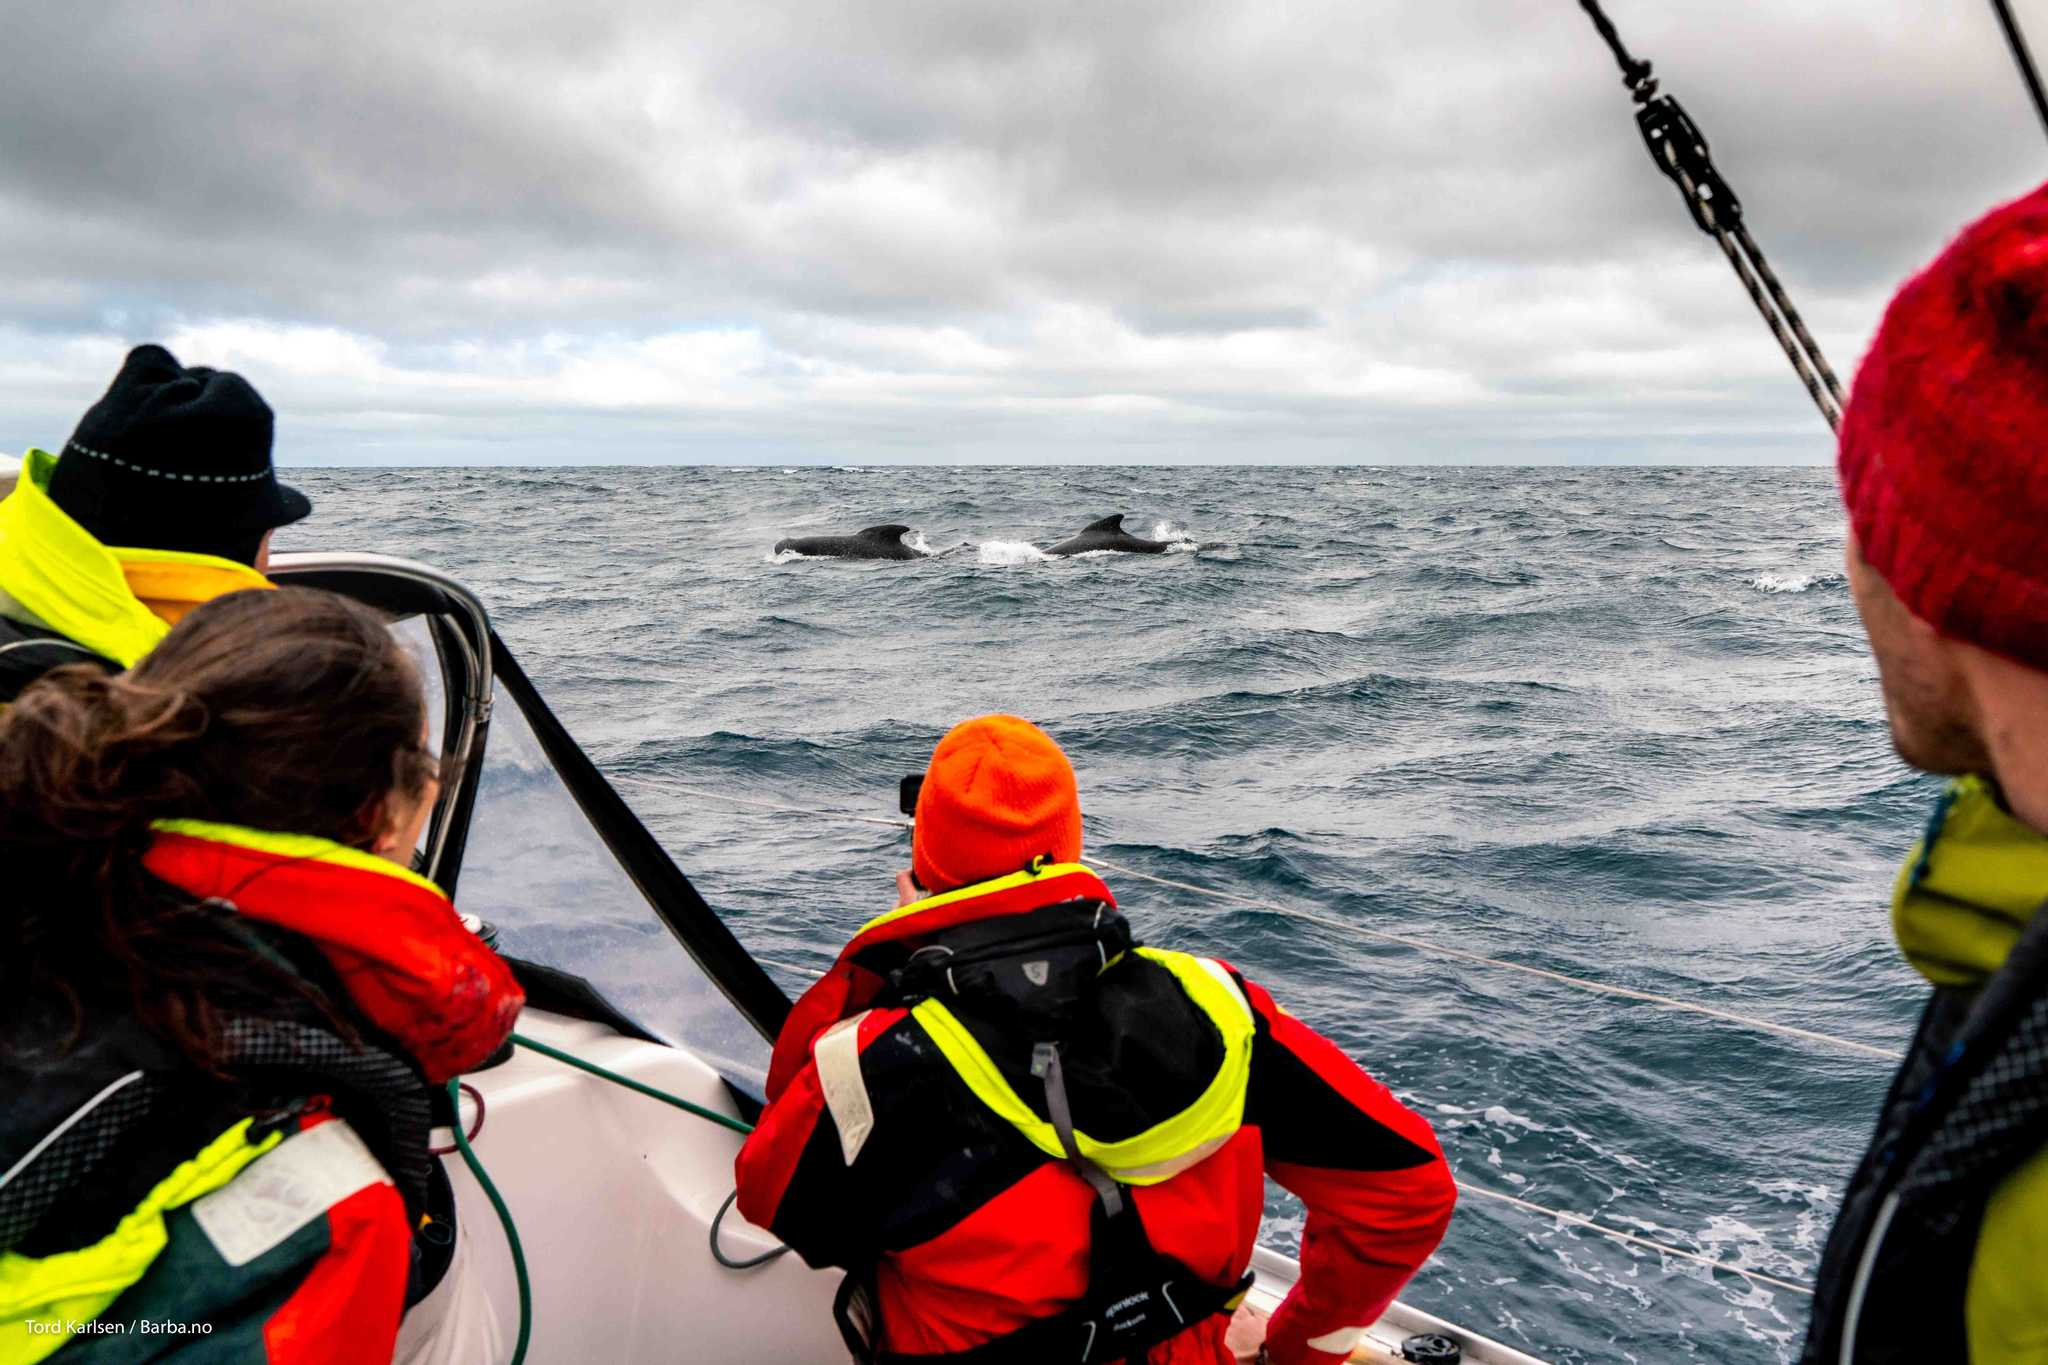 From the left, Fabrice, Diane, Hugh and Andreas enjoying the first whale observation of the expedition. Photo: Tord Karlsen / Barba.no